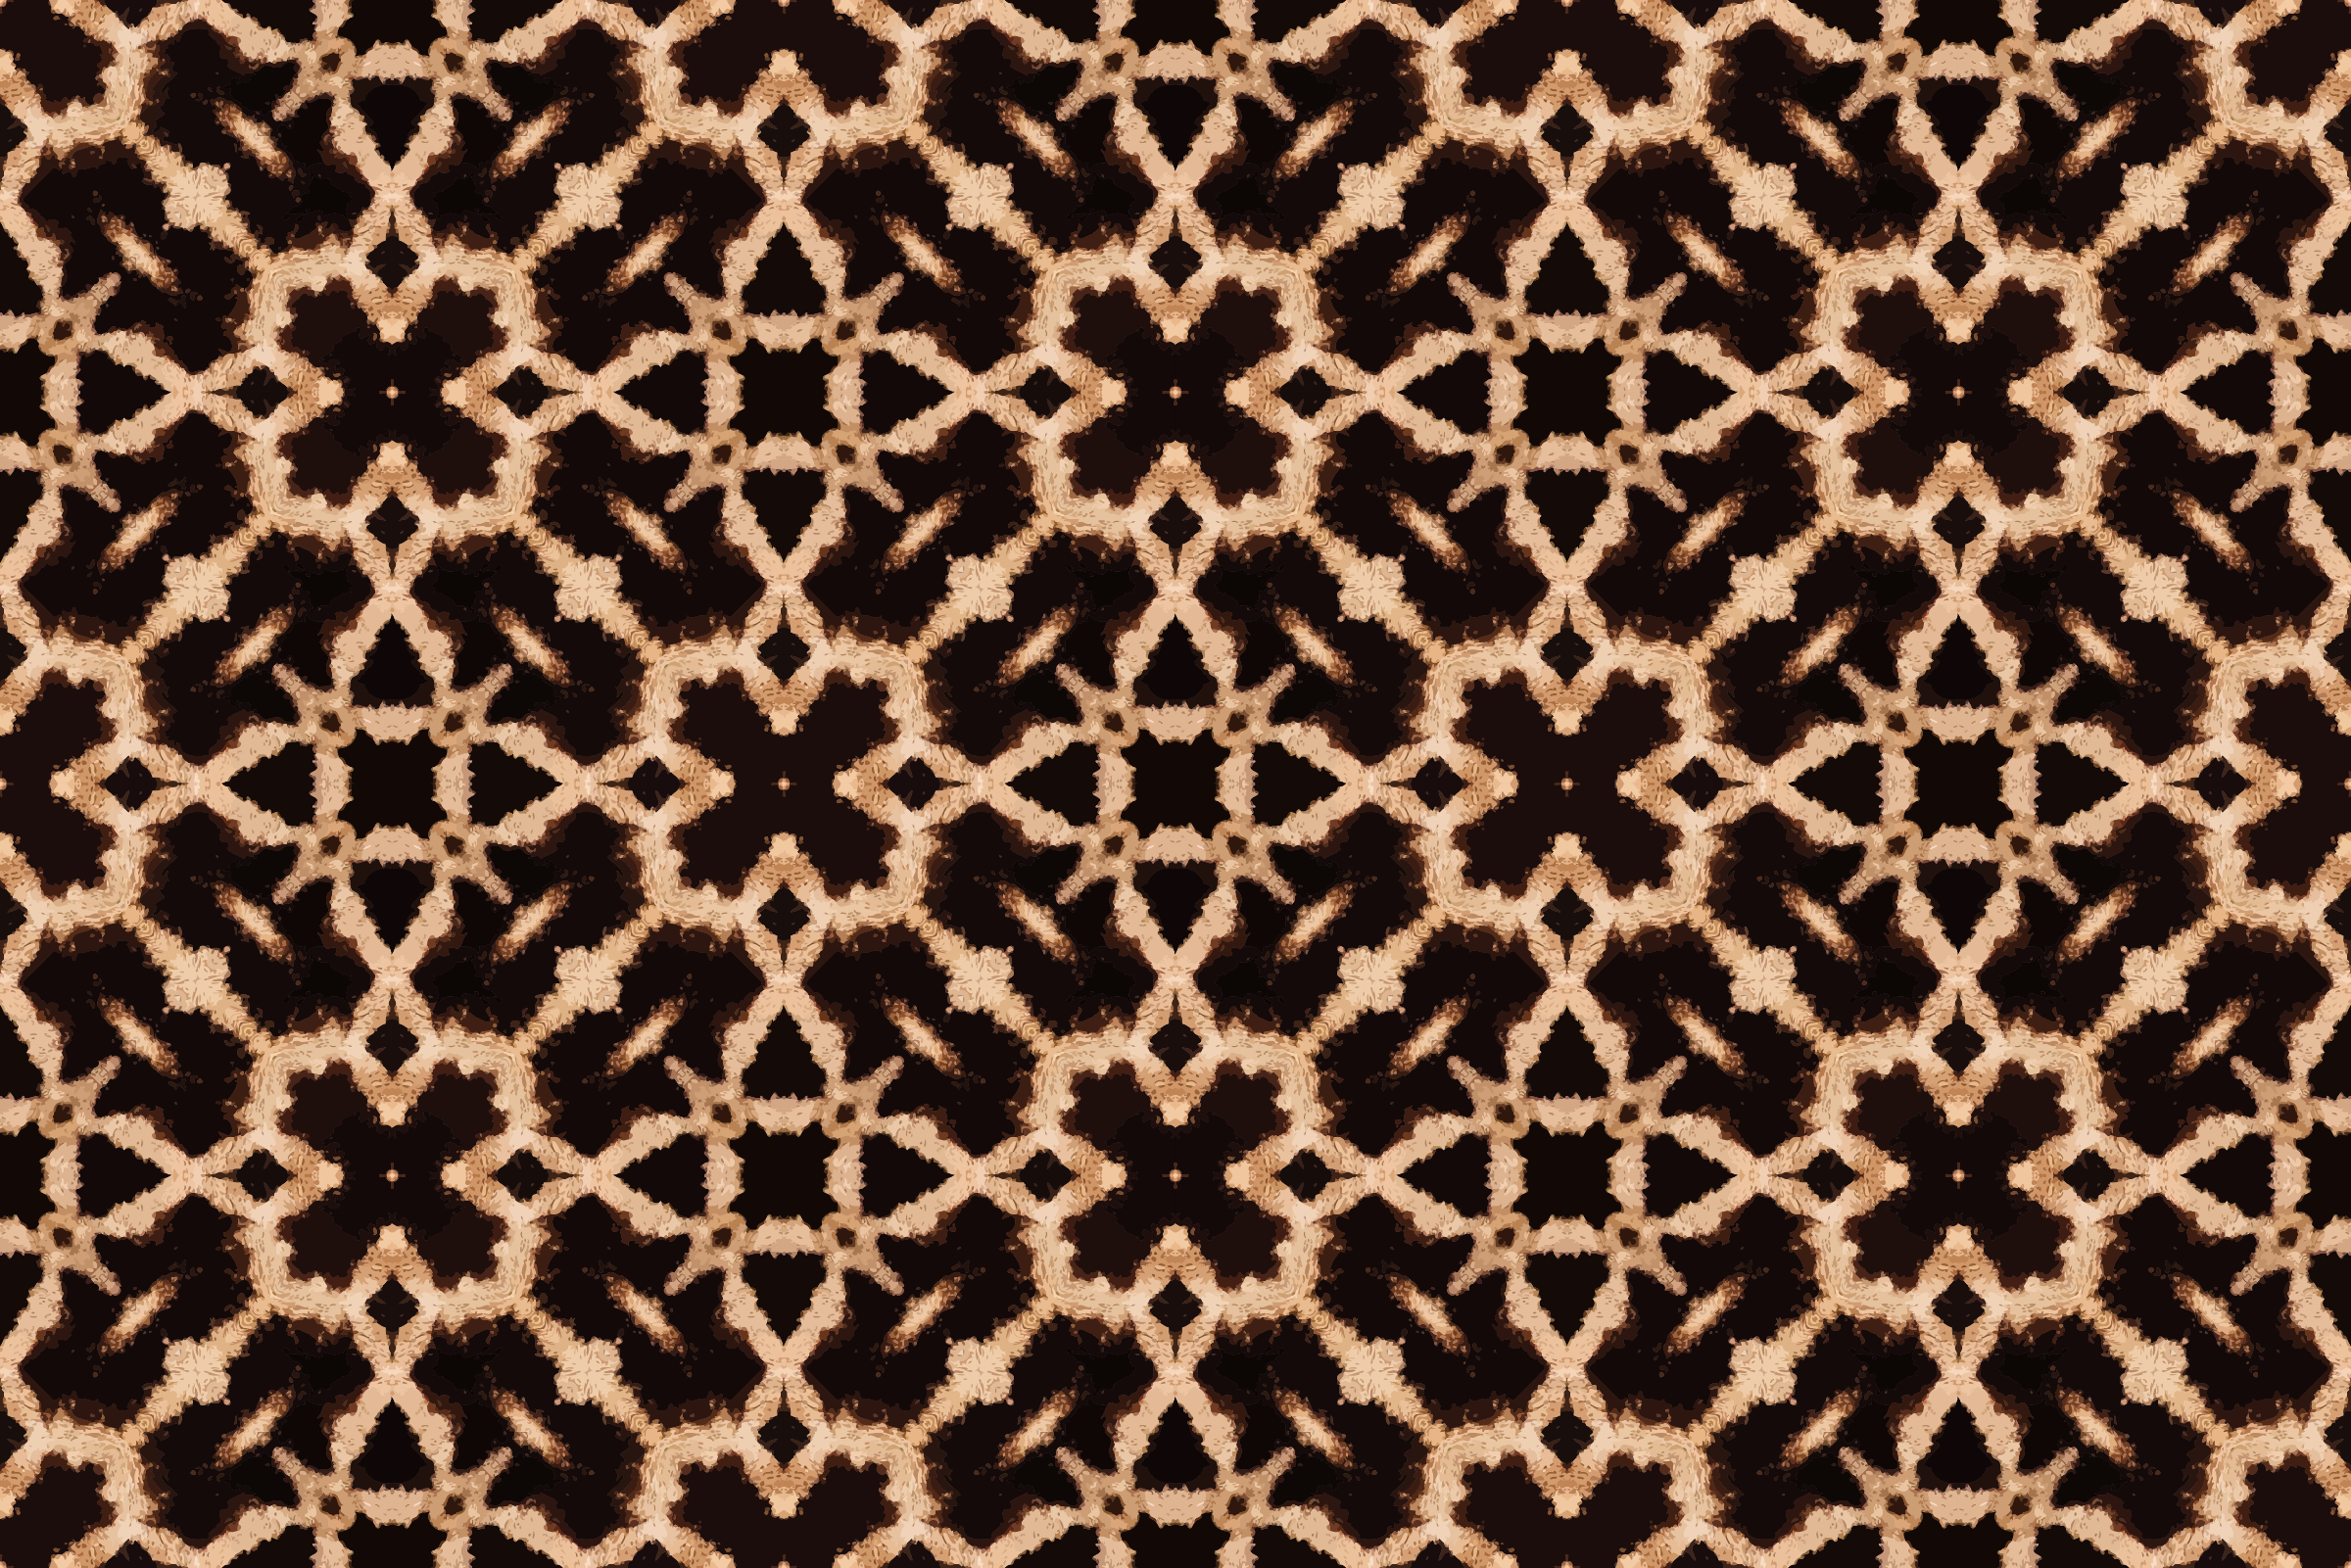 Giraffe fur pattern by Firkin